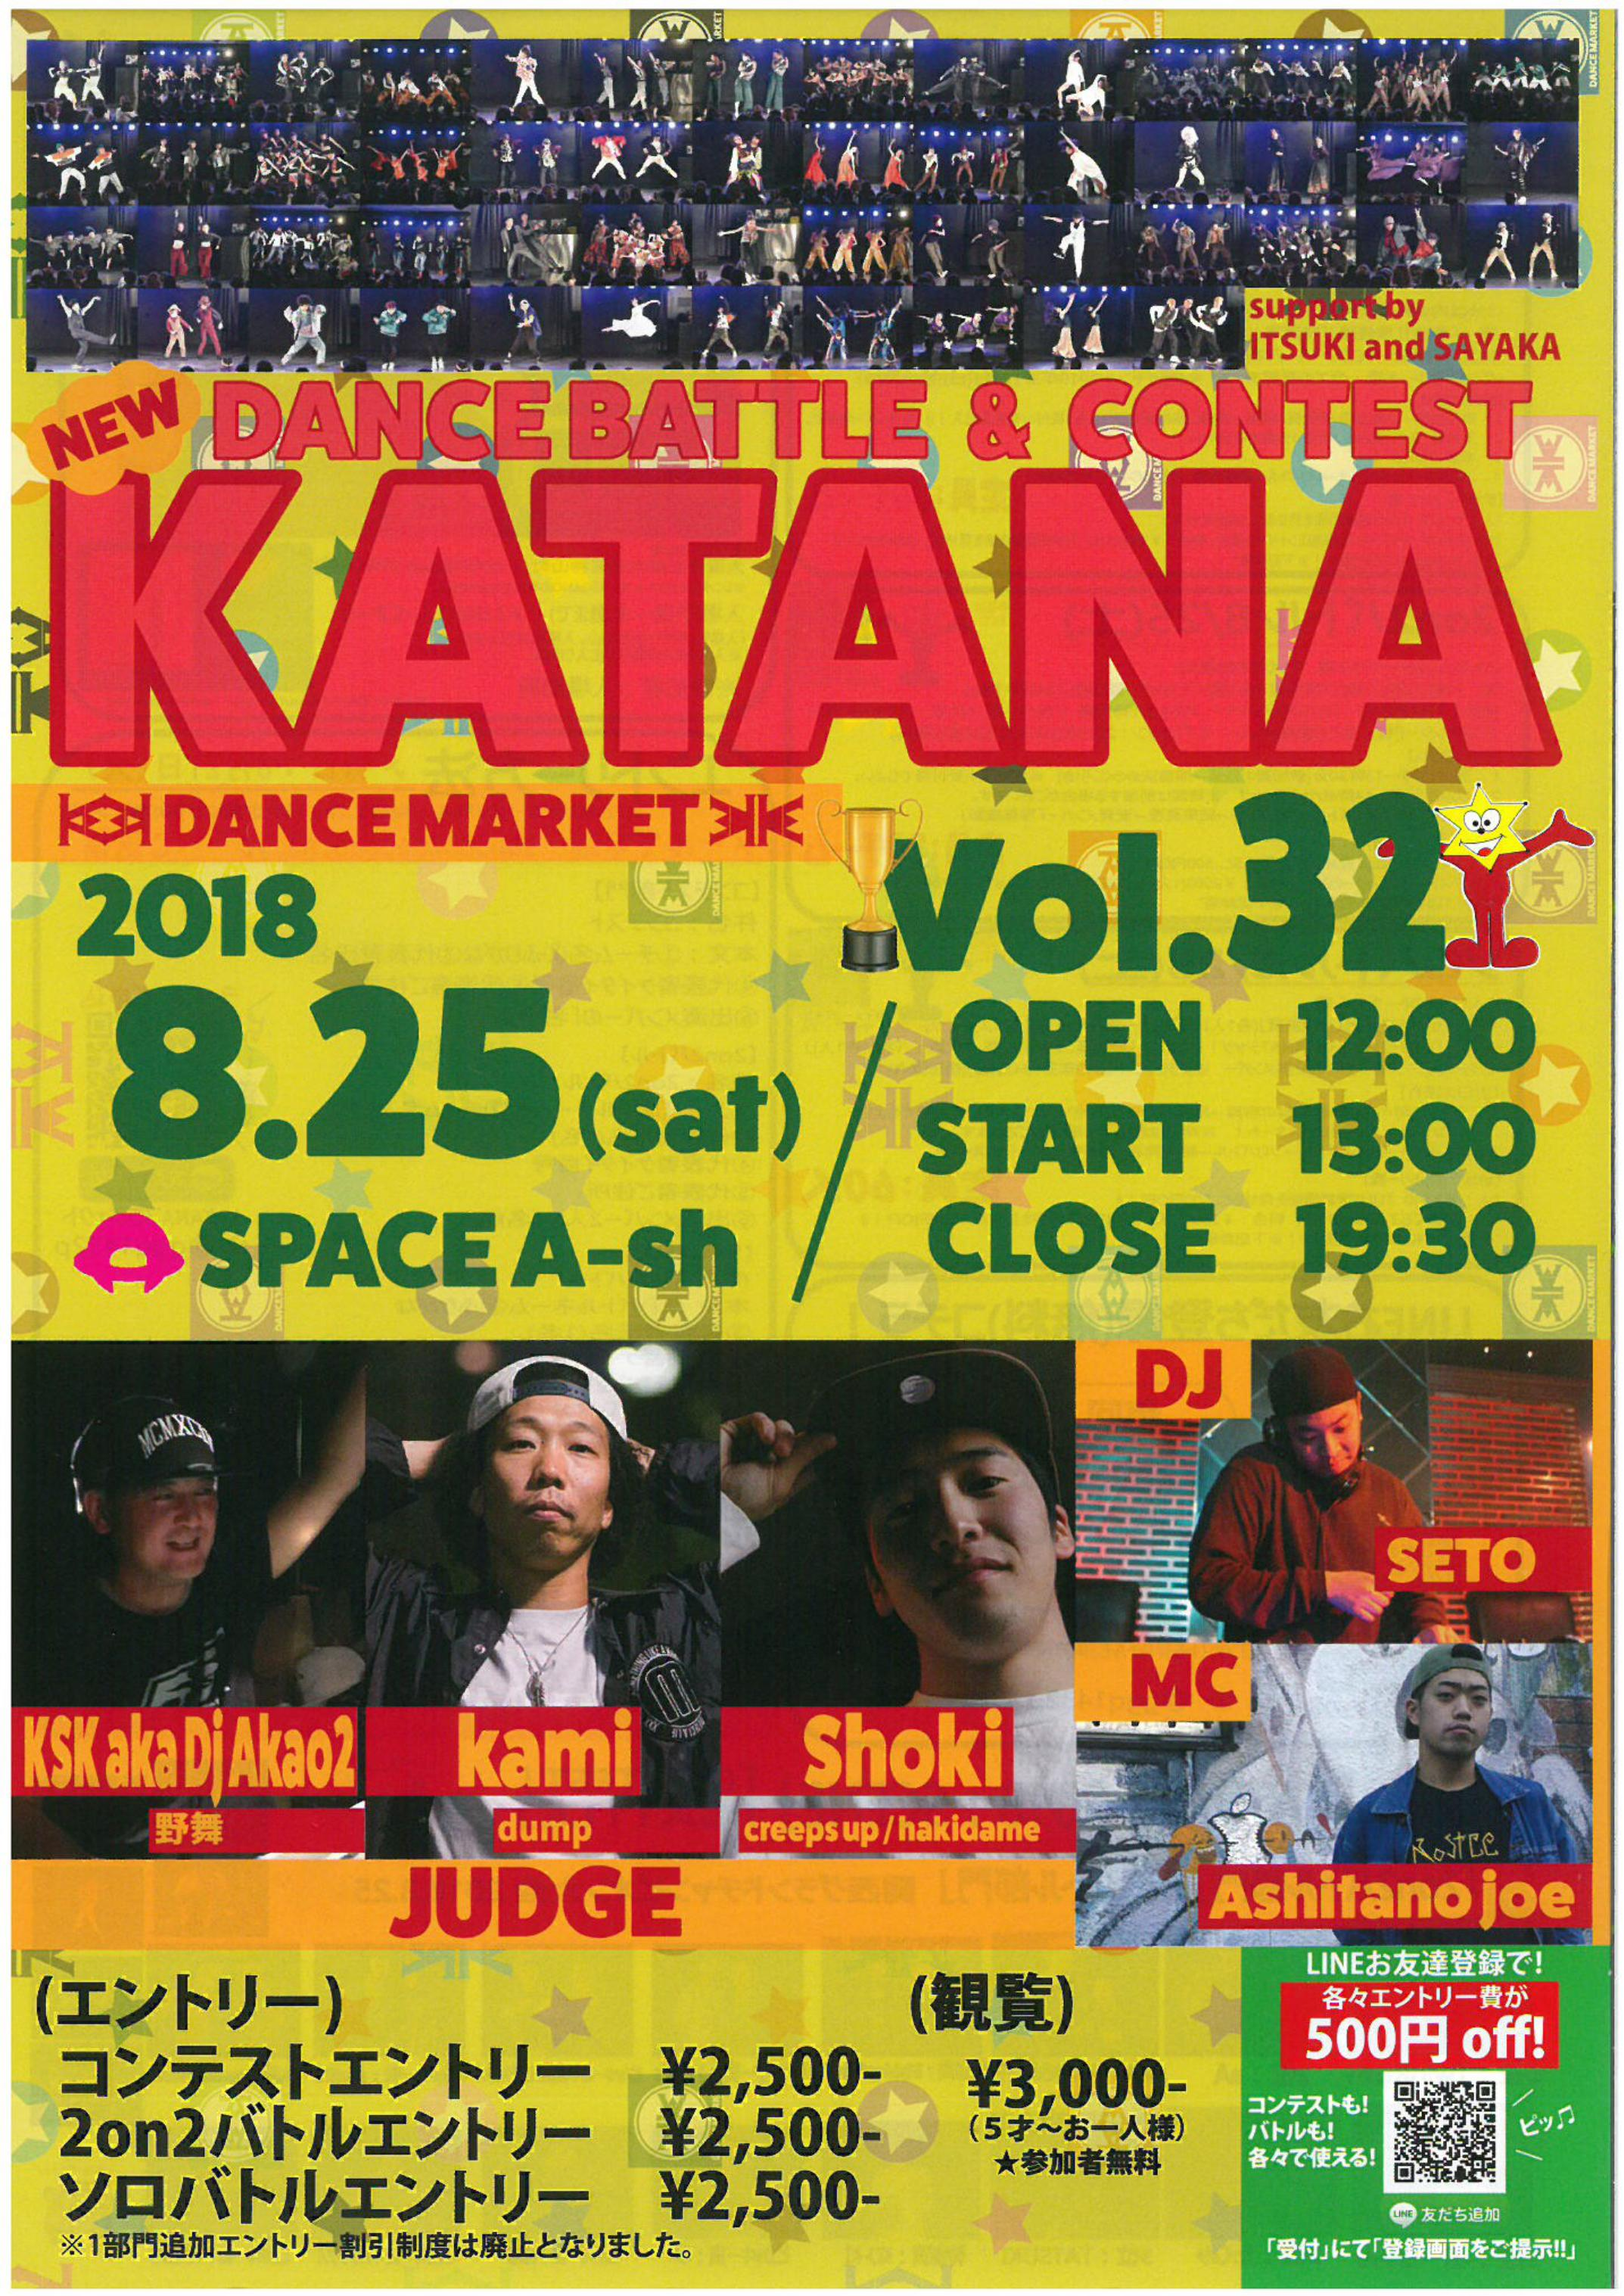 KATANA DANCE MARKET VOL.32